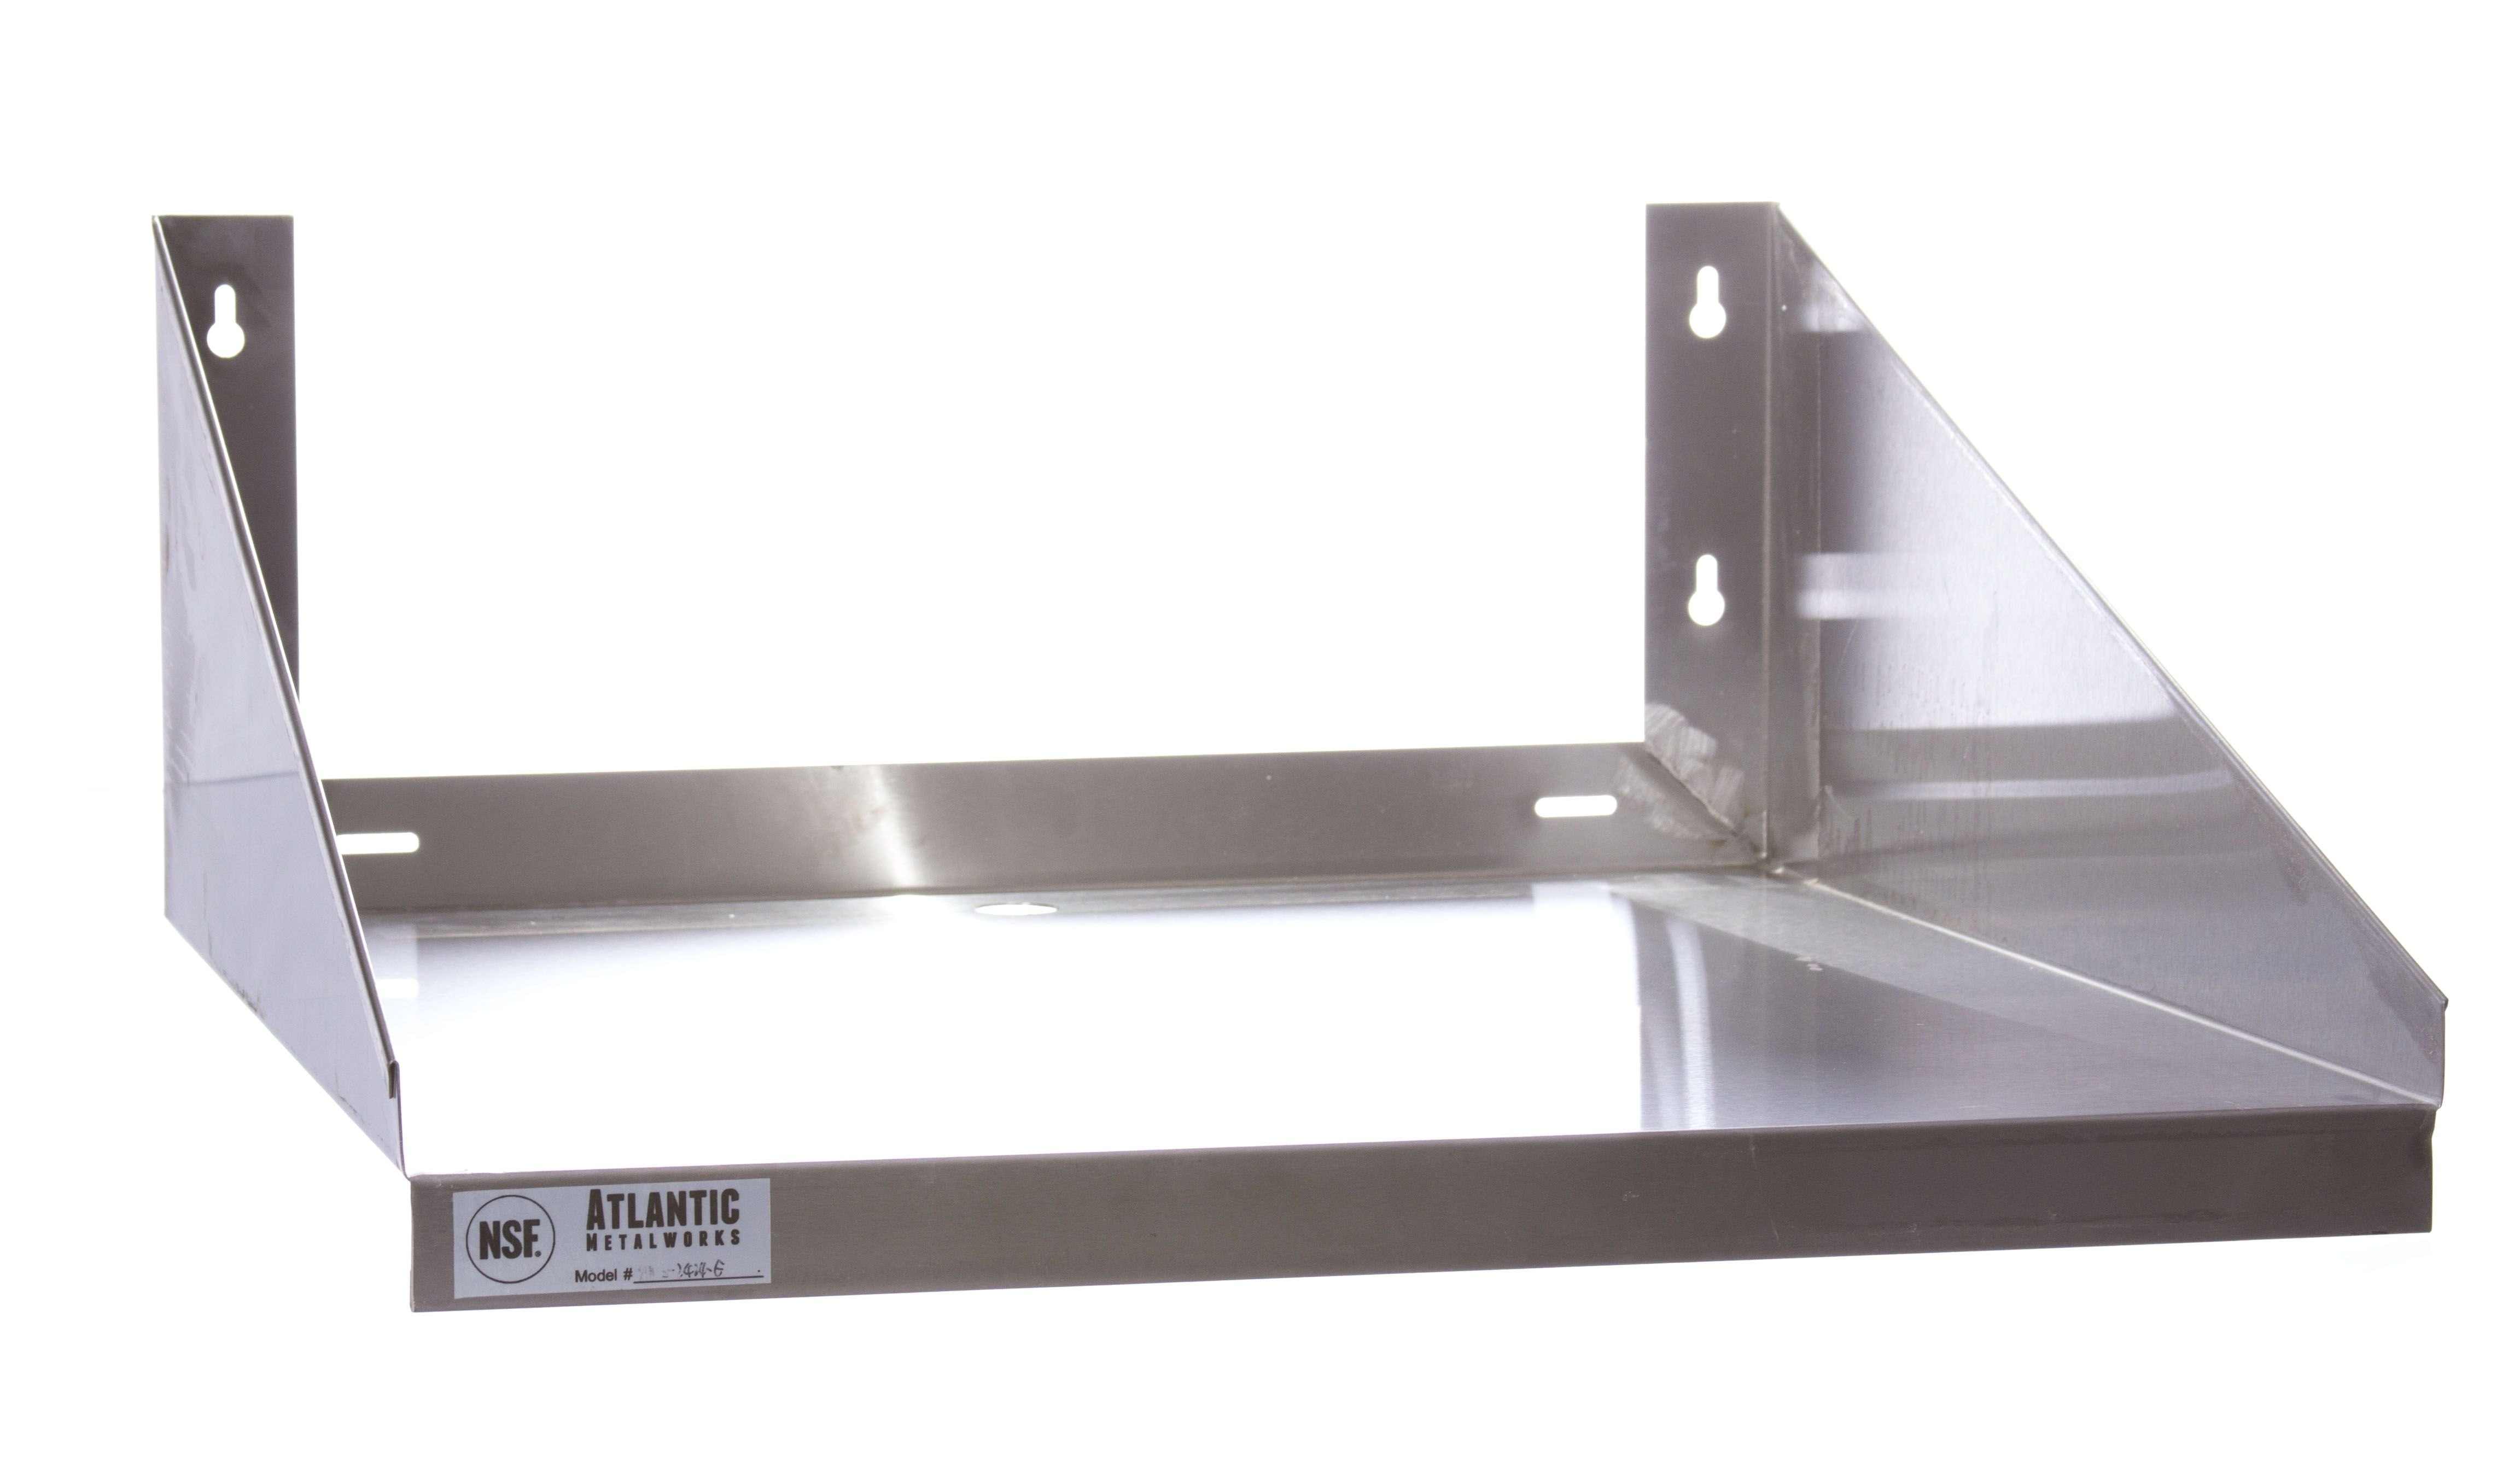 Stainless Steel Wall Mount Microwave Shelf With Images Microwave Wall Mount Microwave Wall Shelf Mounted Microwave